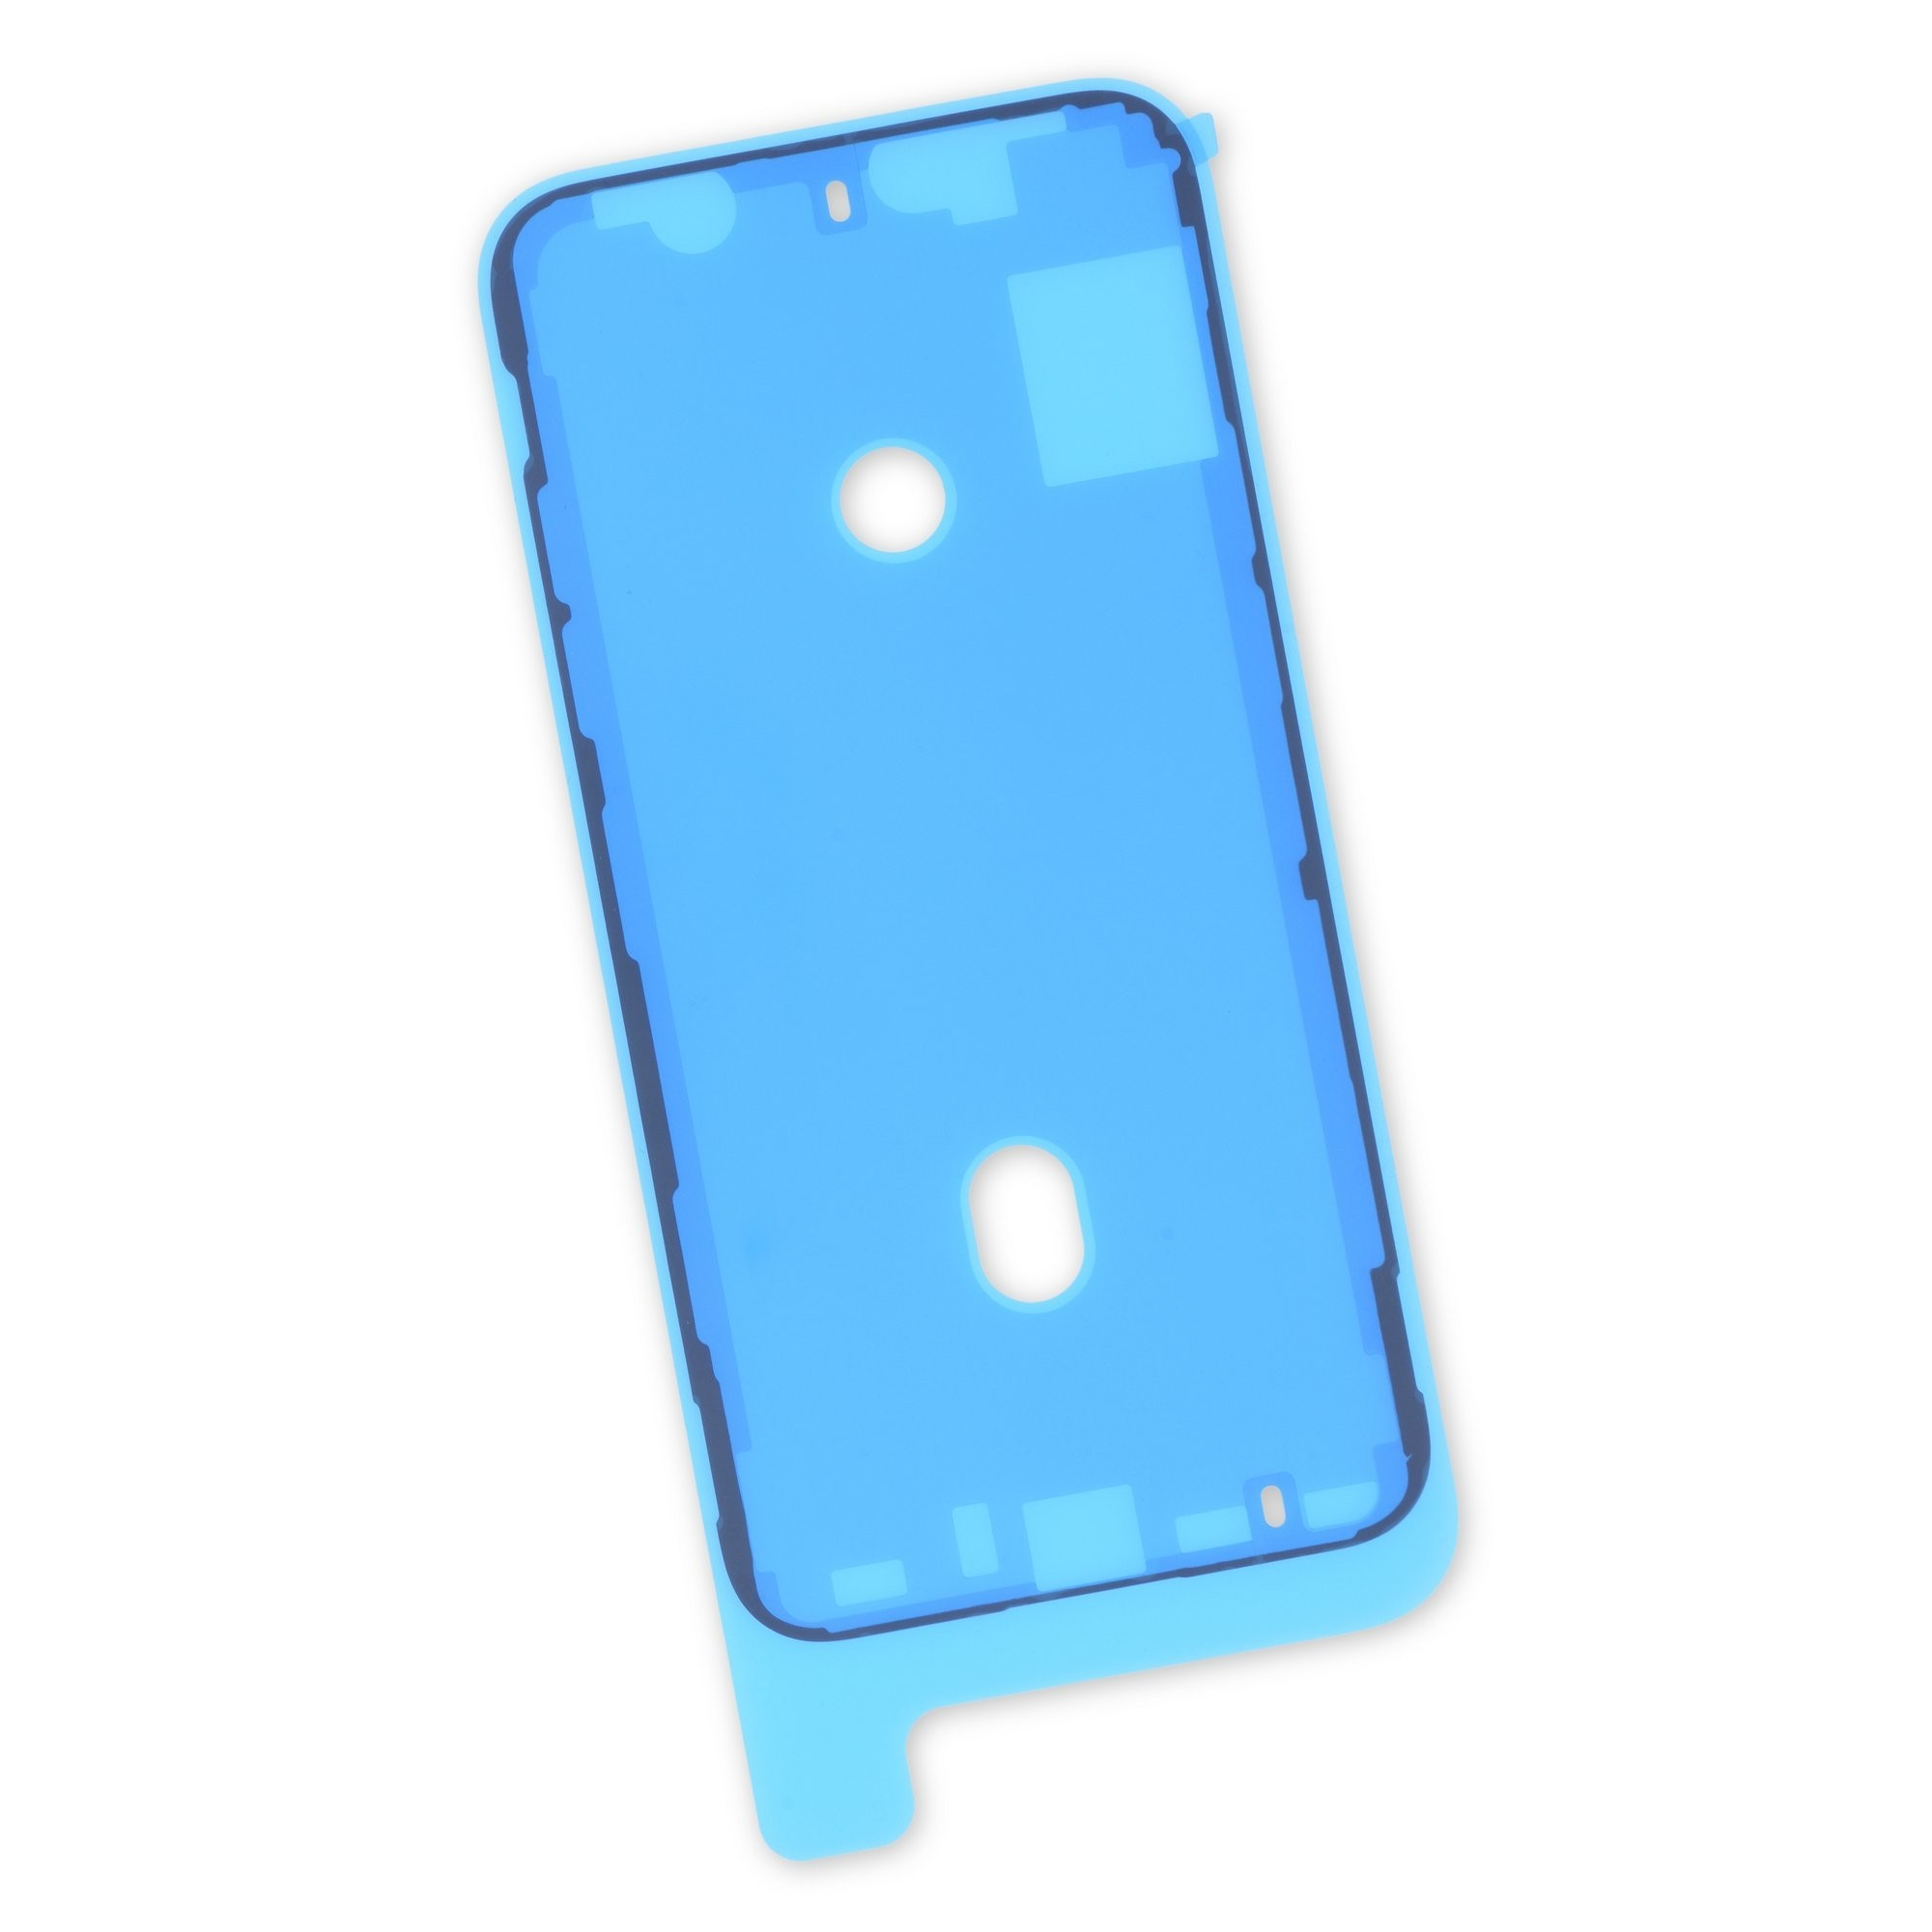 iPhone XS Display Assembly Adhesive, IF406-002-1